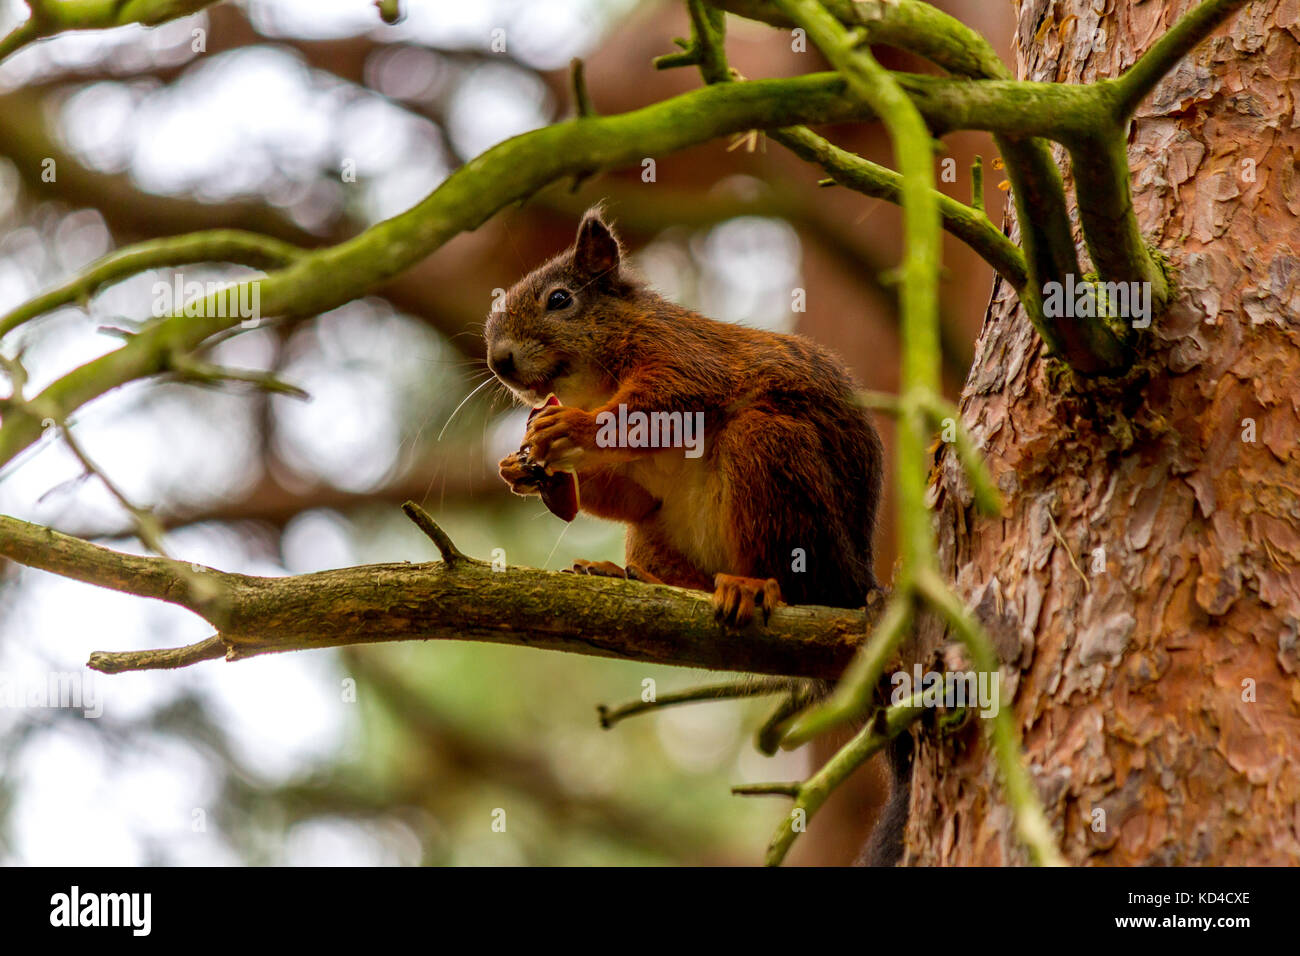 Red Squirrel sitting on a branch eating a nut at Formby Red Squirrel Reserve, Formby, Merseyside, U.K. 2017. - Stock Image